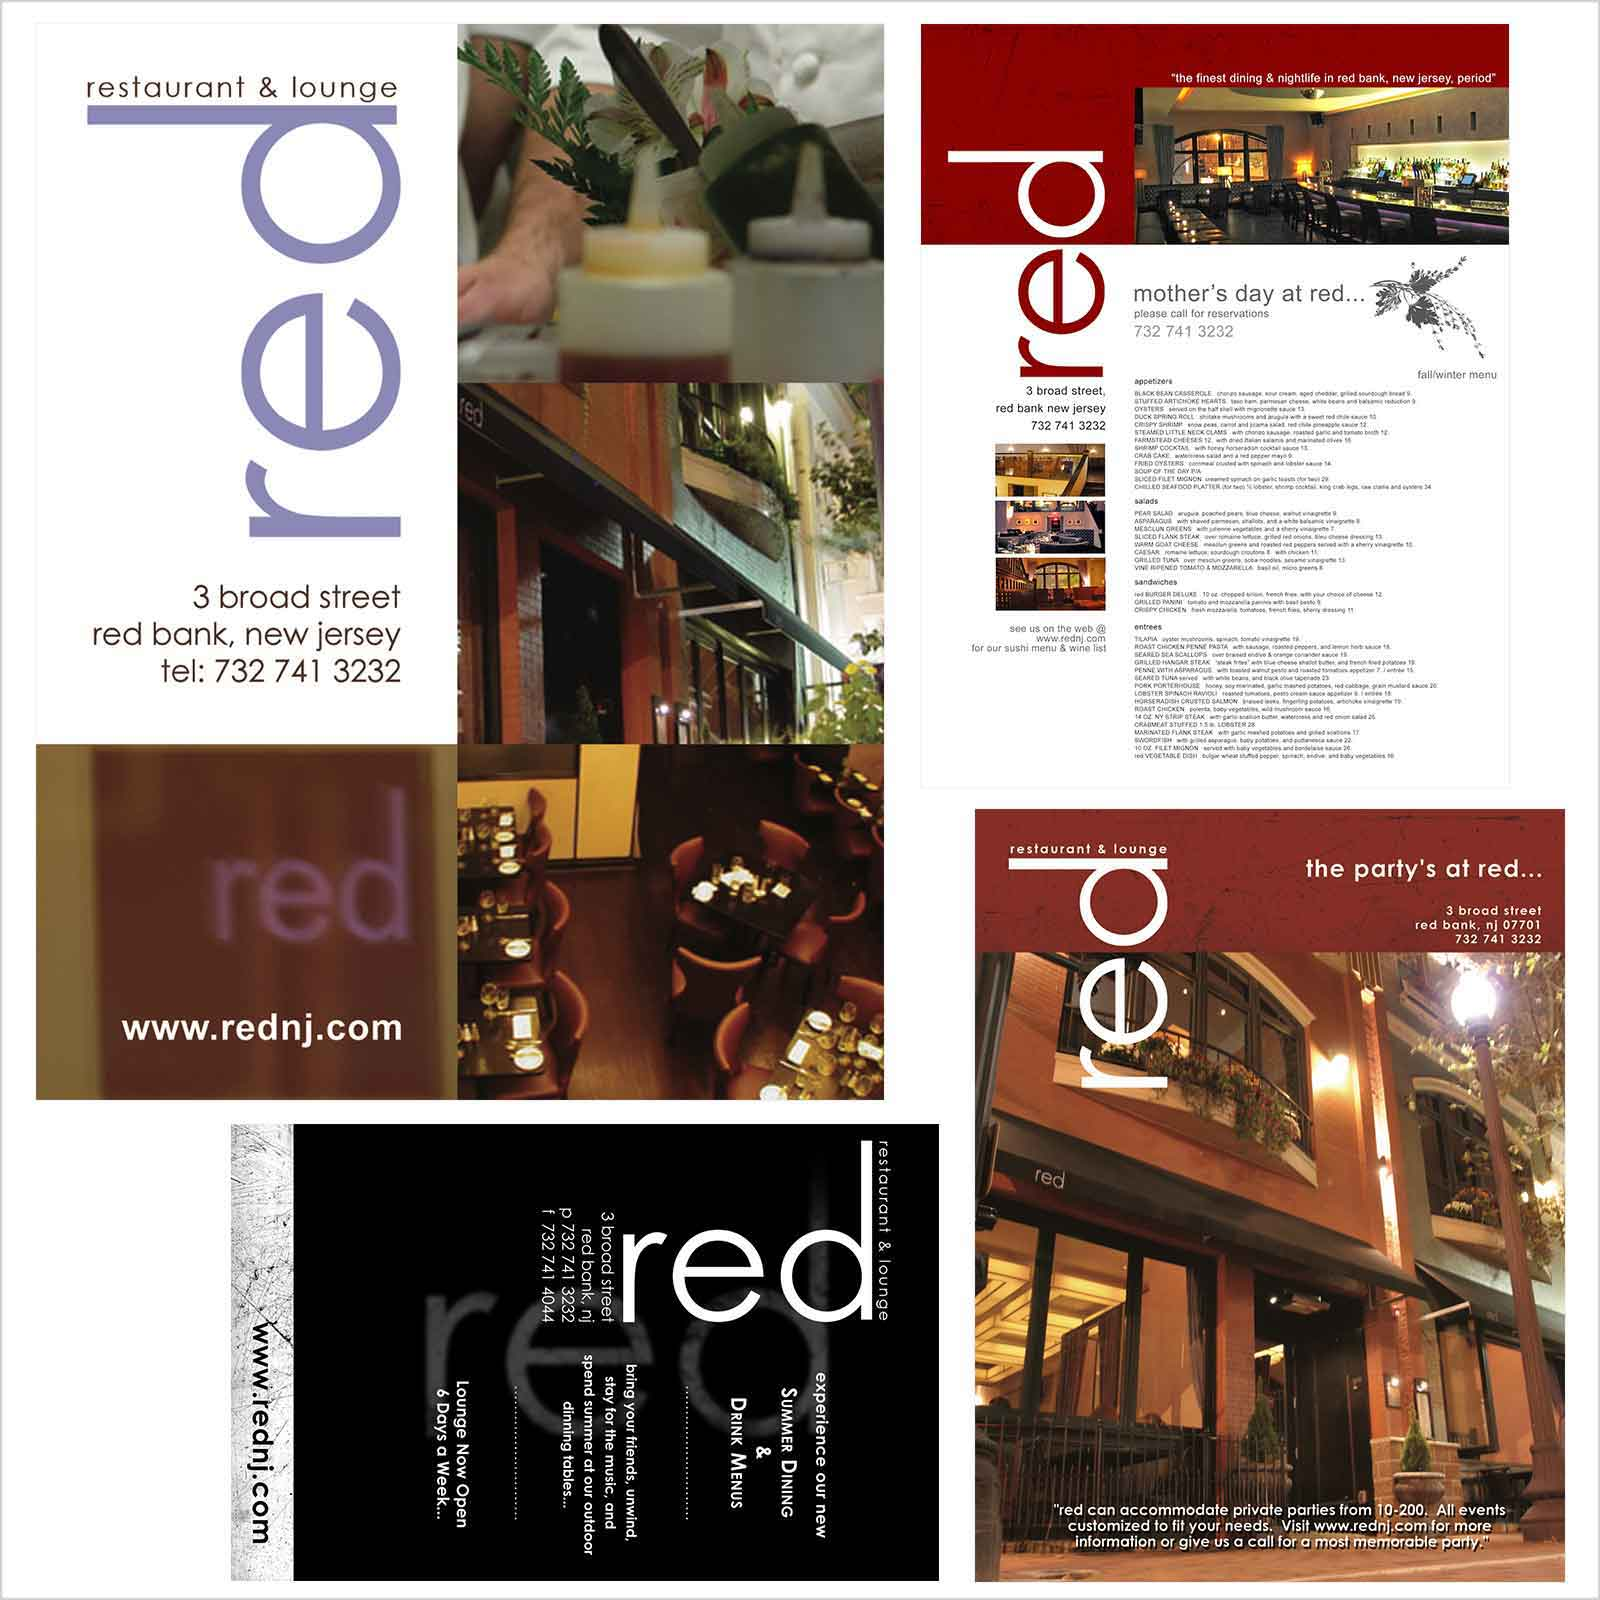 rowmack - Print Design - NJ Restaurant Ads